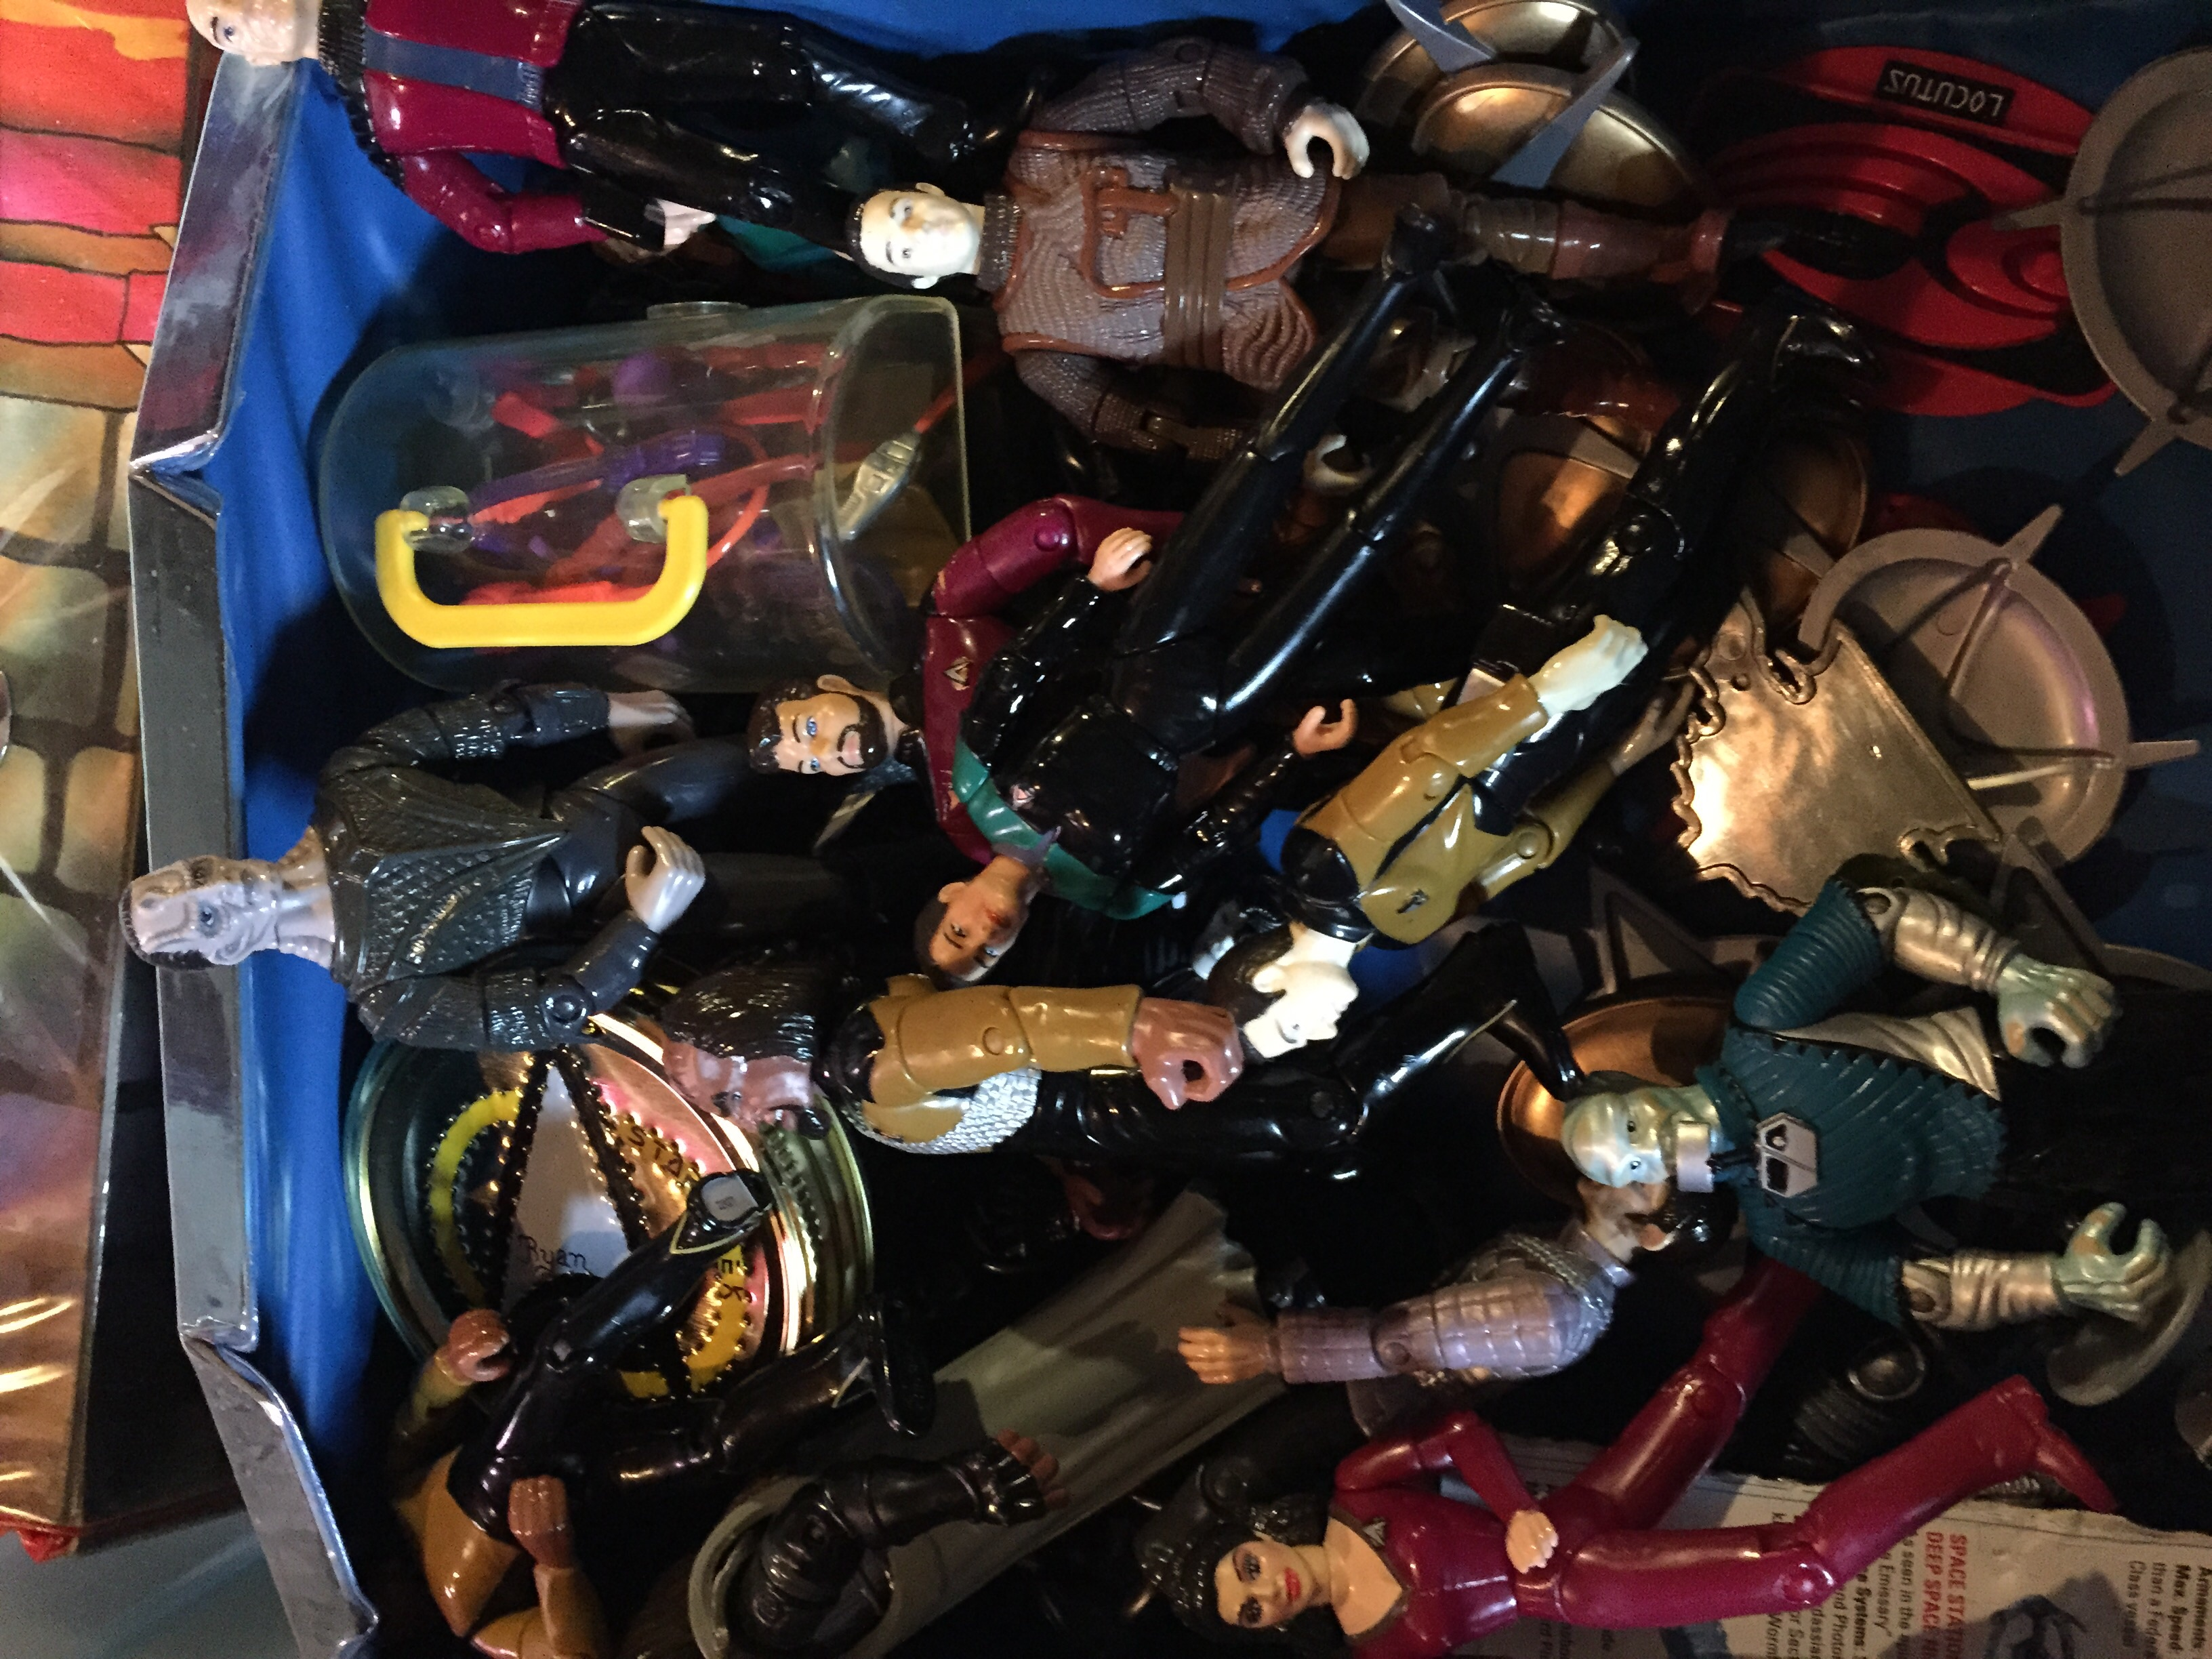 A case of Star Trek action figures. I was pretty cool.